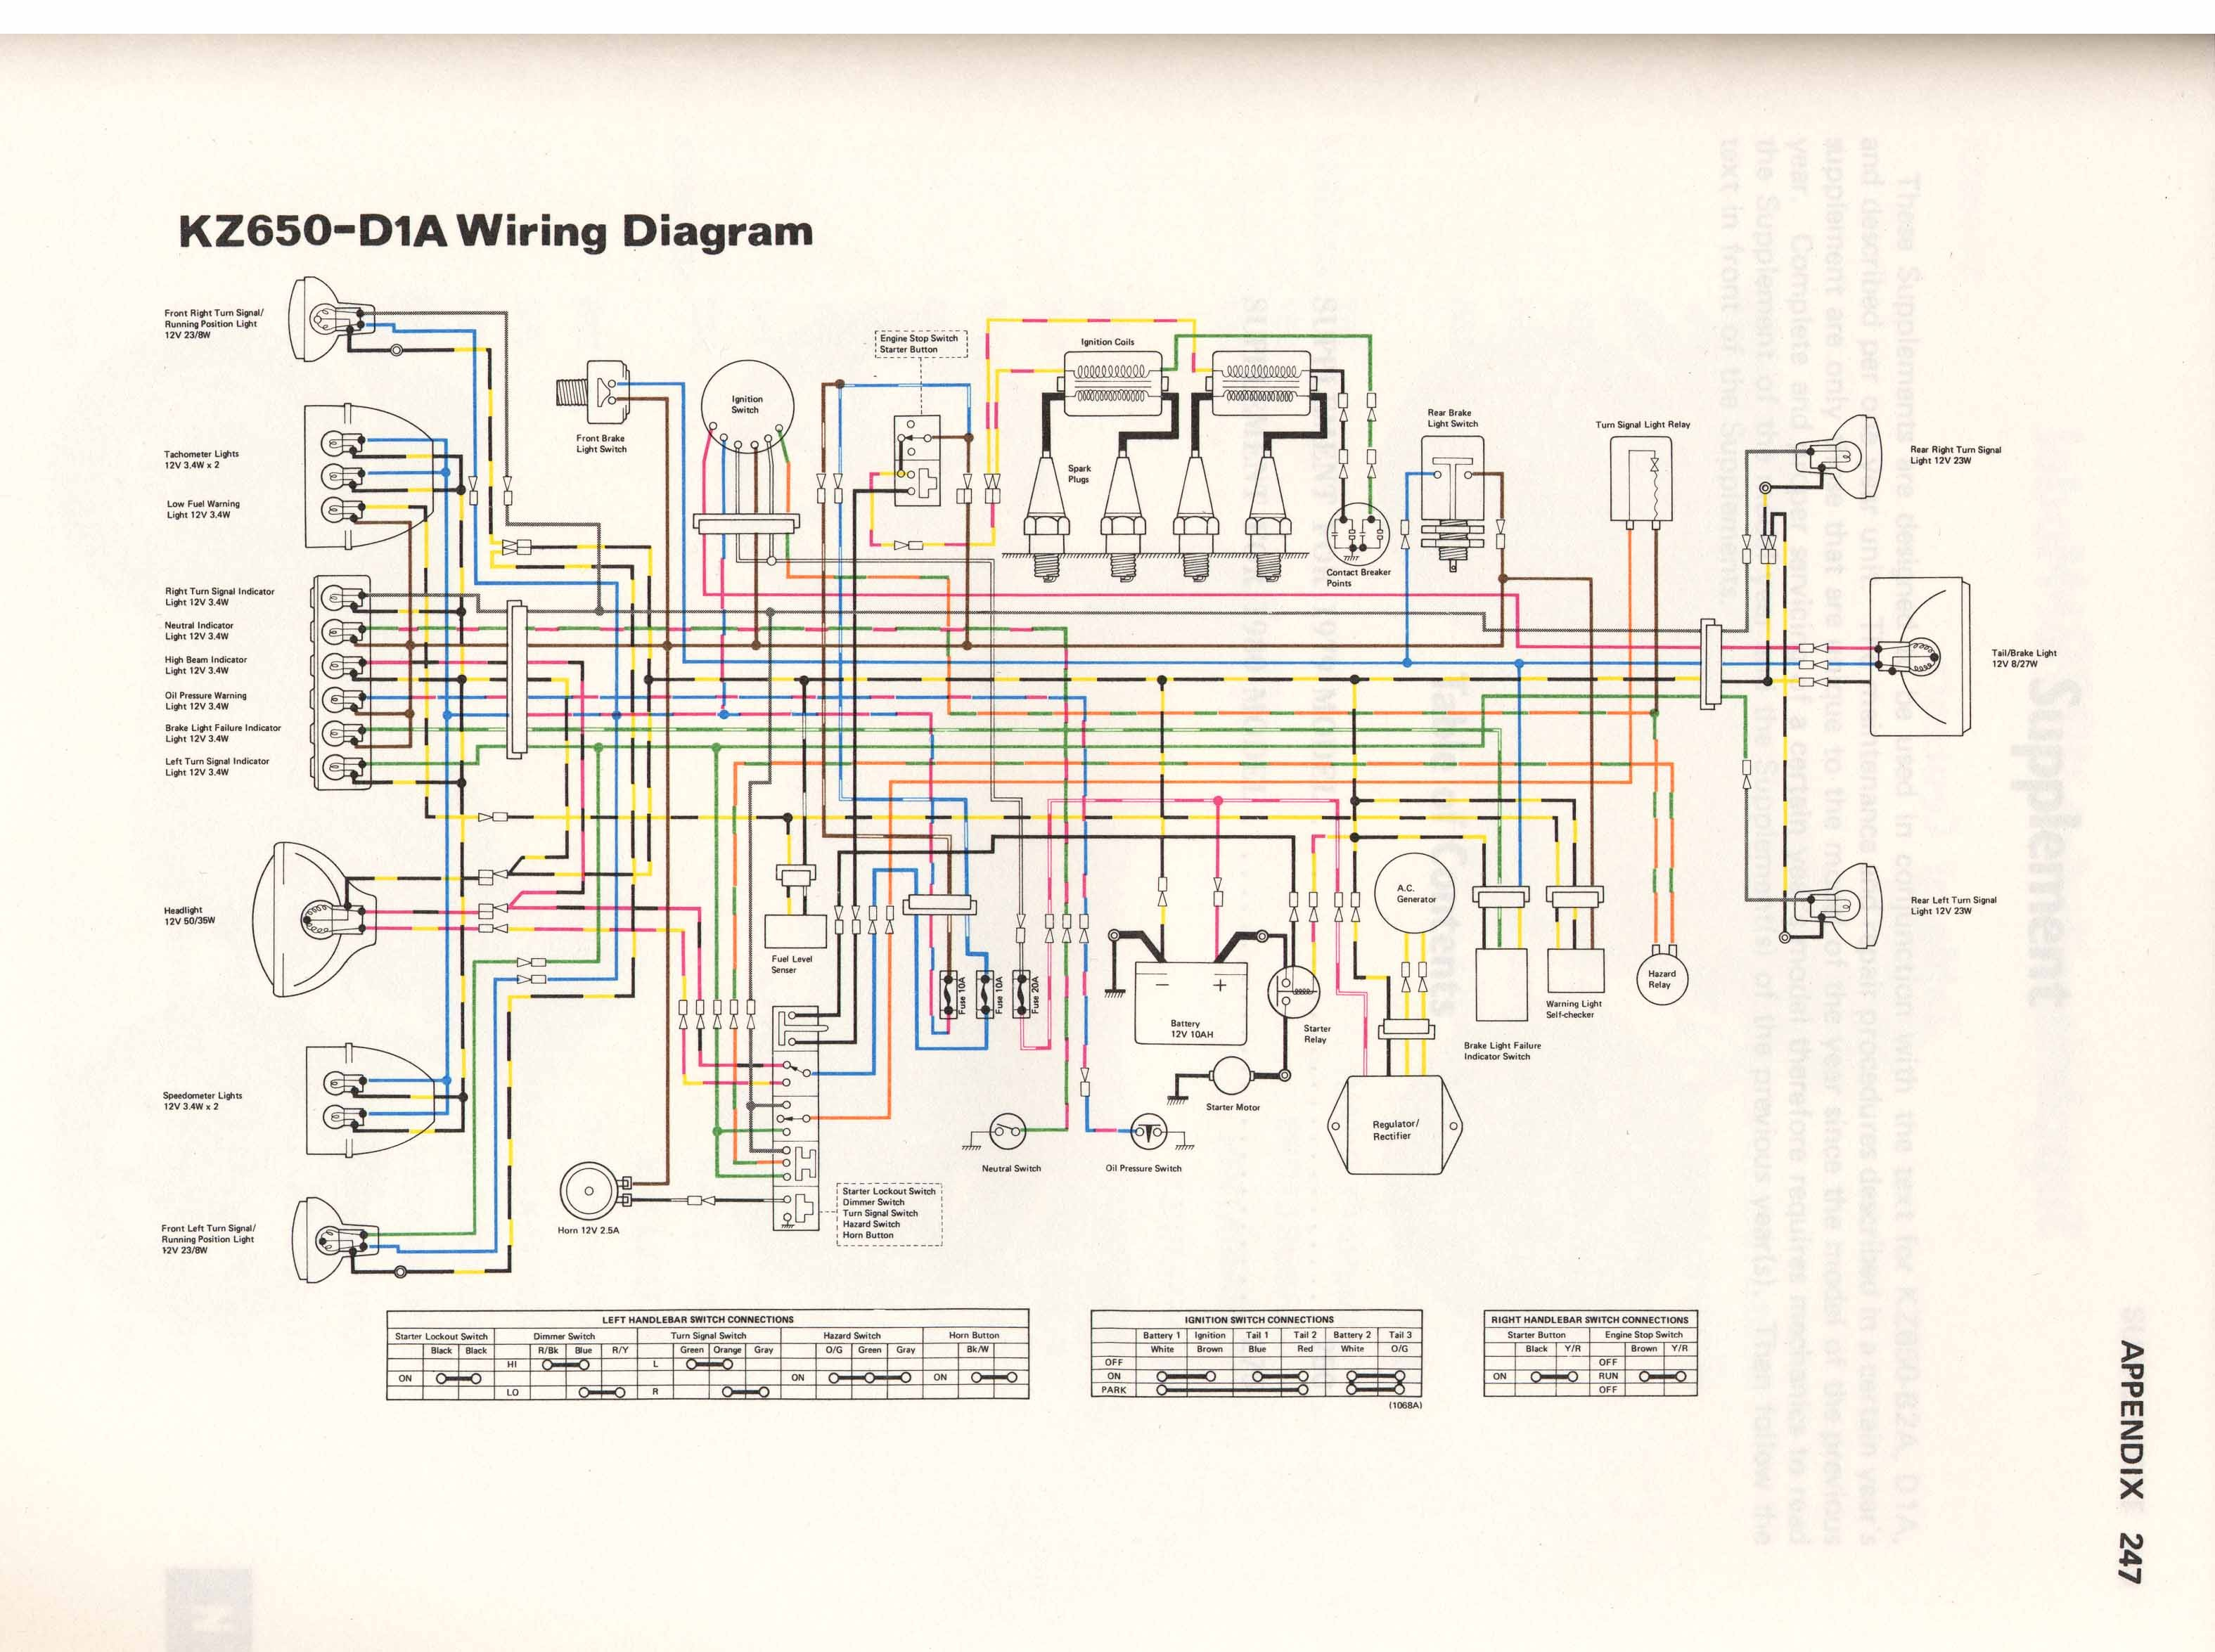 zx600 wiring diagram circuits symbols diagrams u2022 rh amdrums co uk kawasaki zx6r wiring diagram 2012 kawasaki zx6r wiring diagram